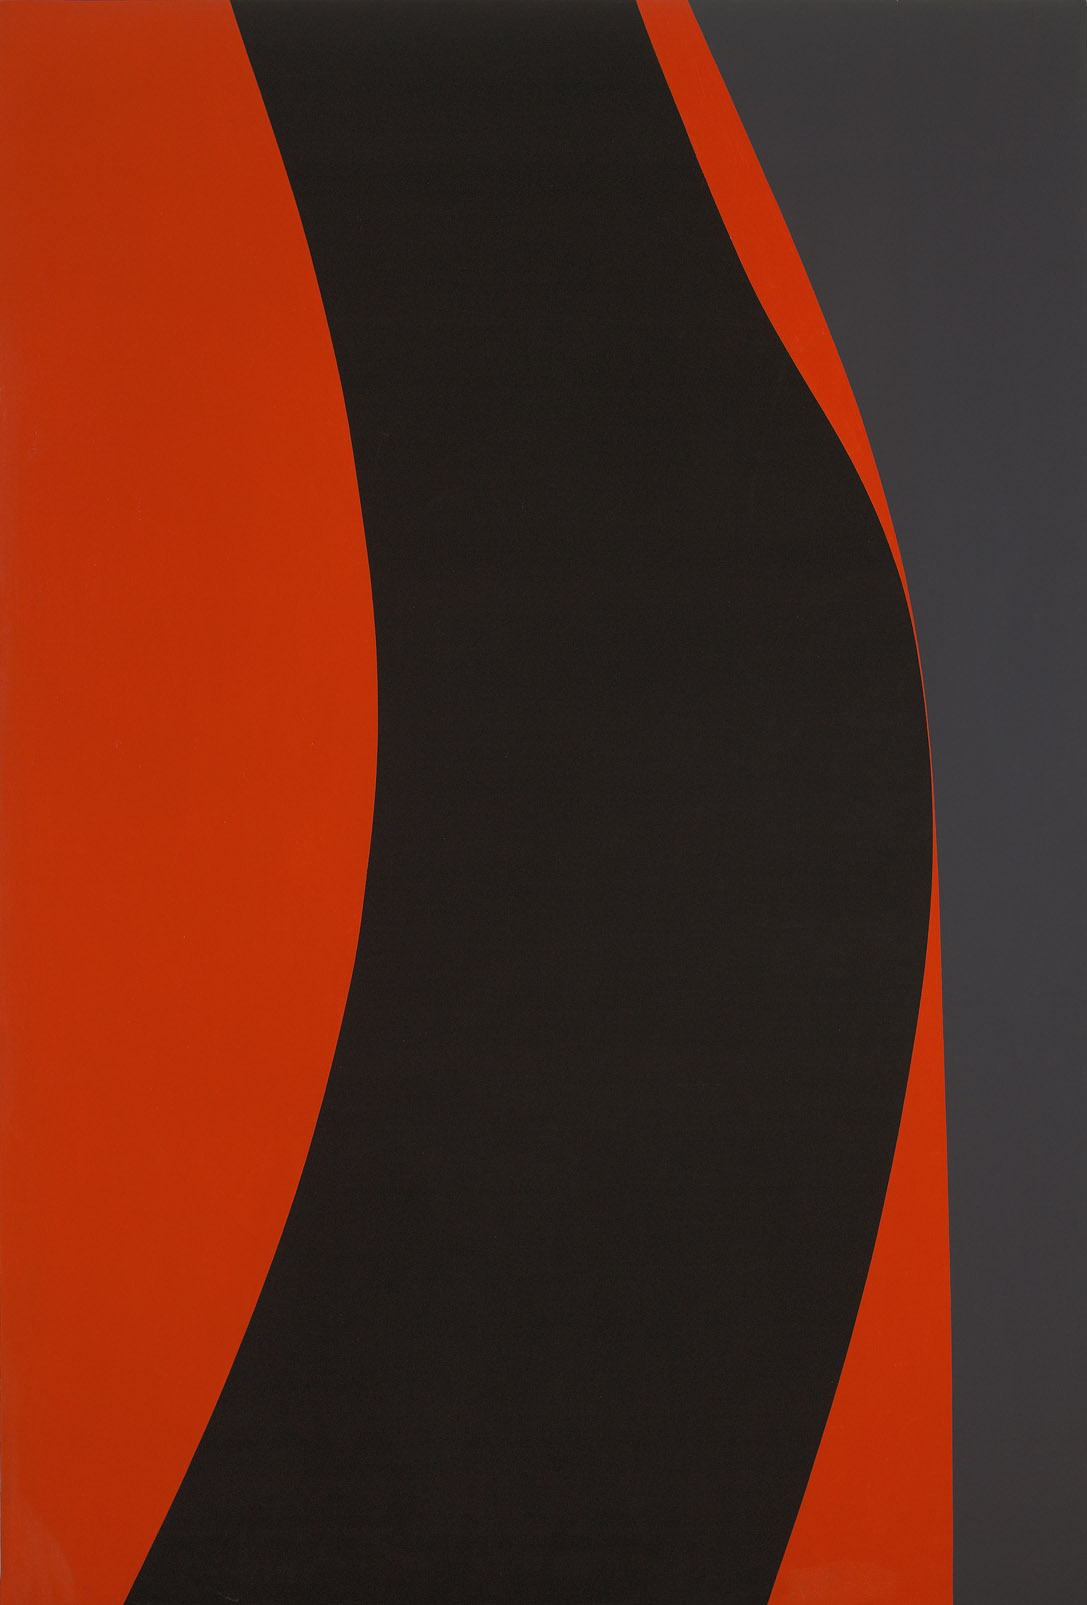 Untitled (July 21) , 1966  acrylic on canvas 90 x 60 inches; 228.6 x 152.4 centimeters